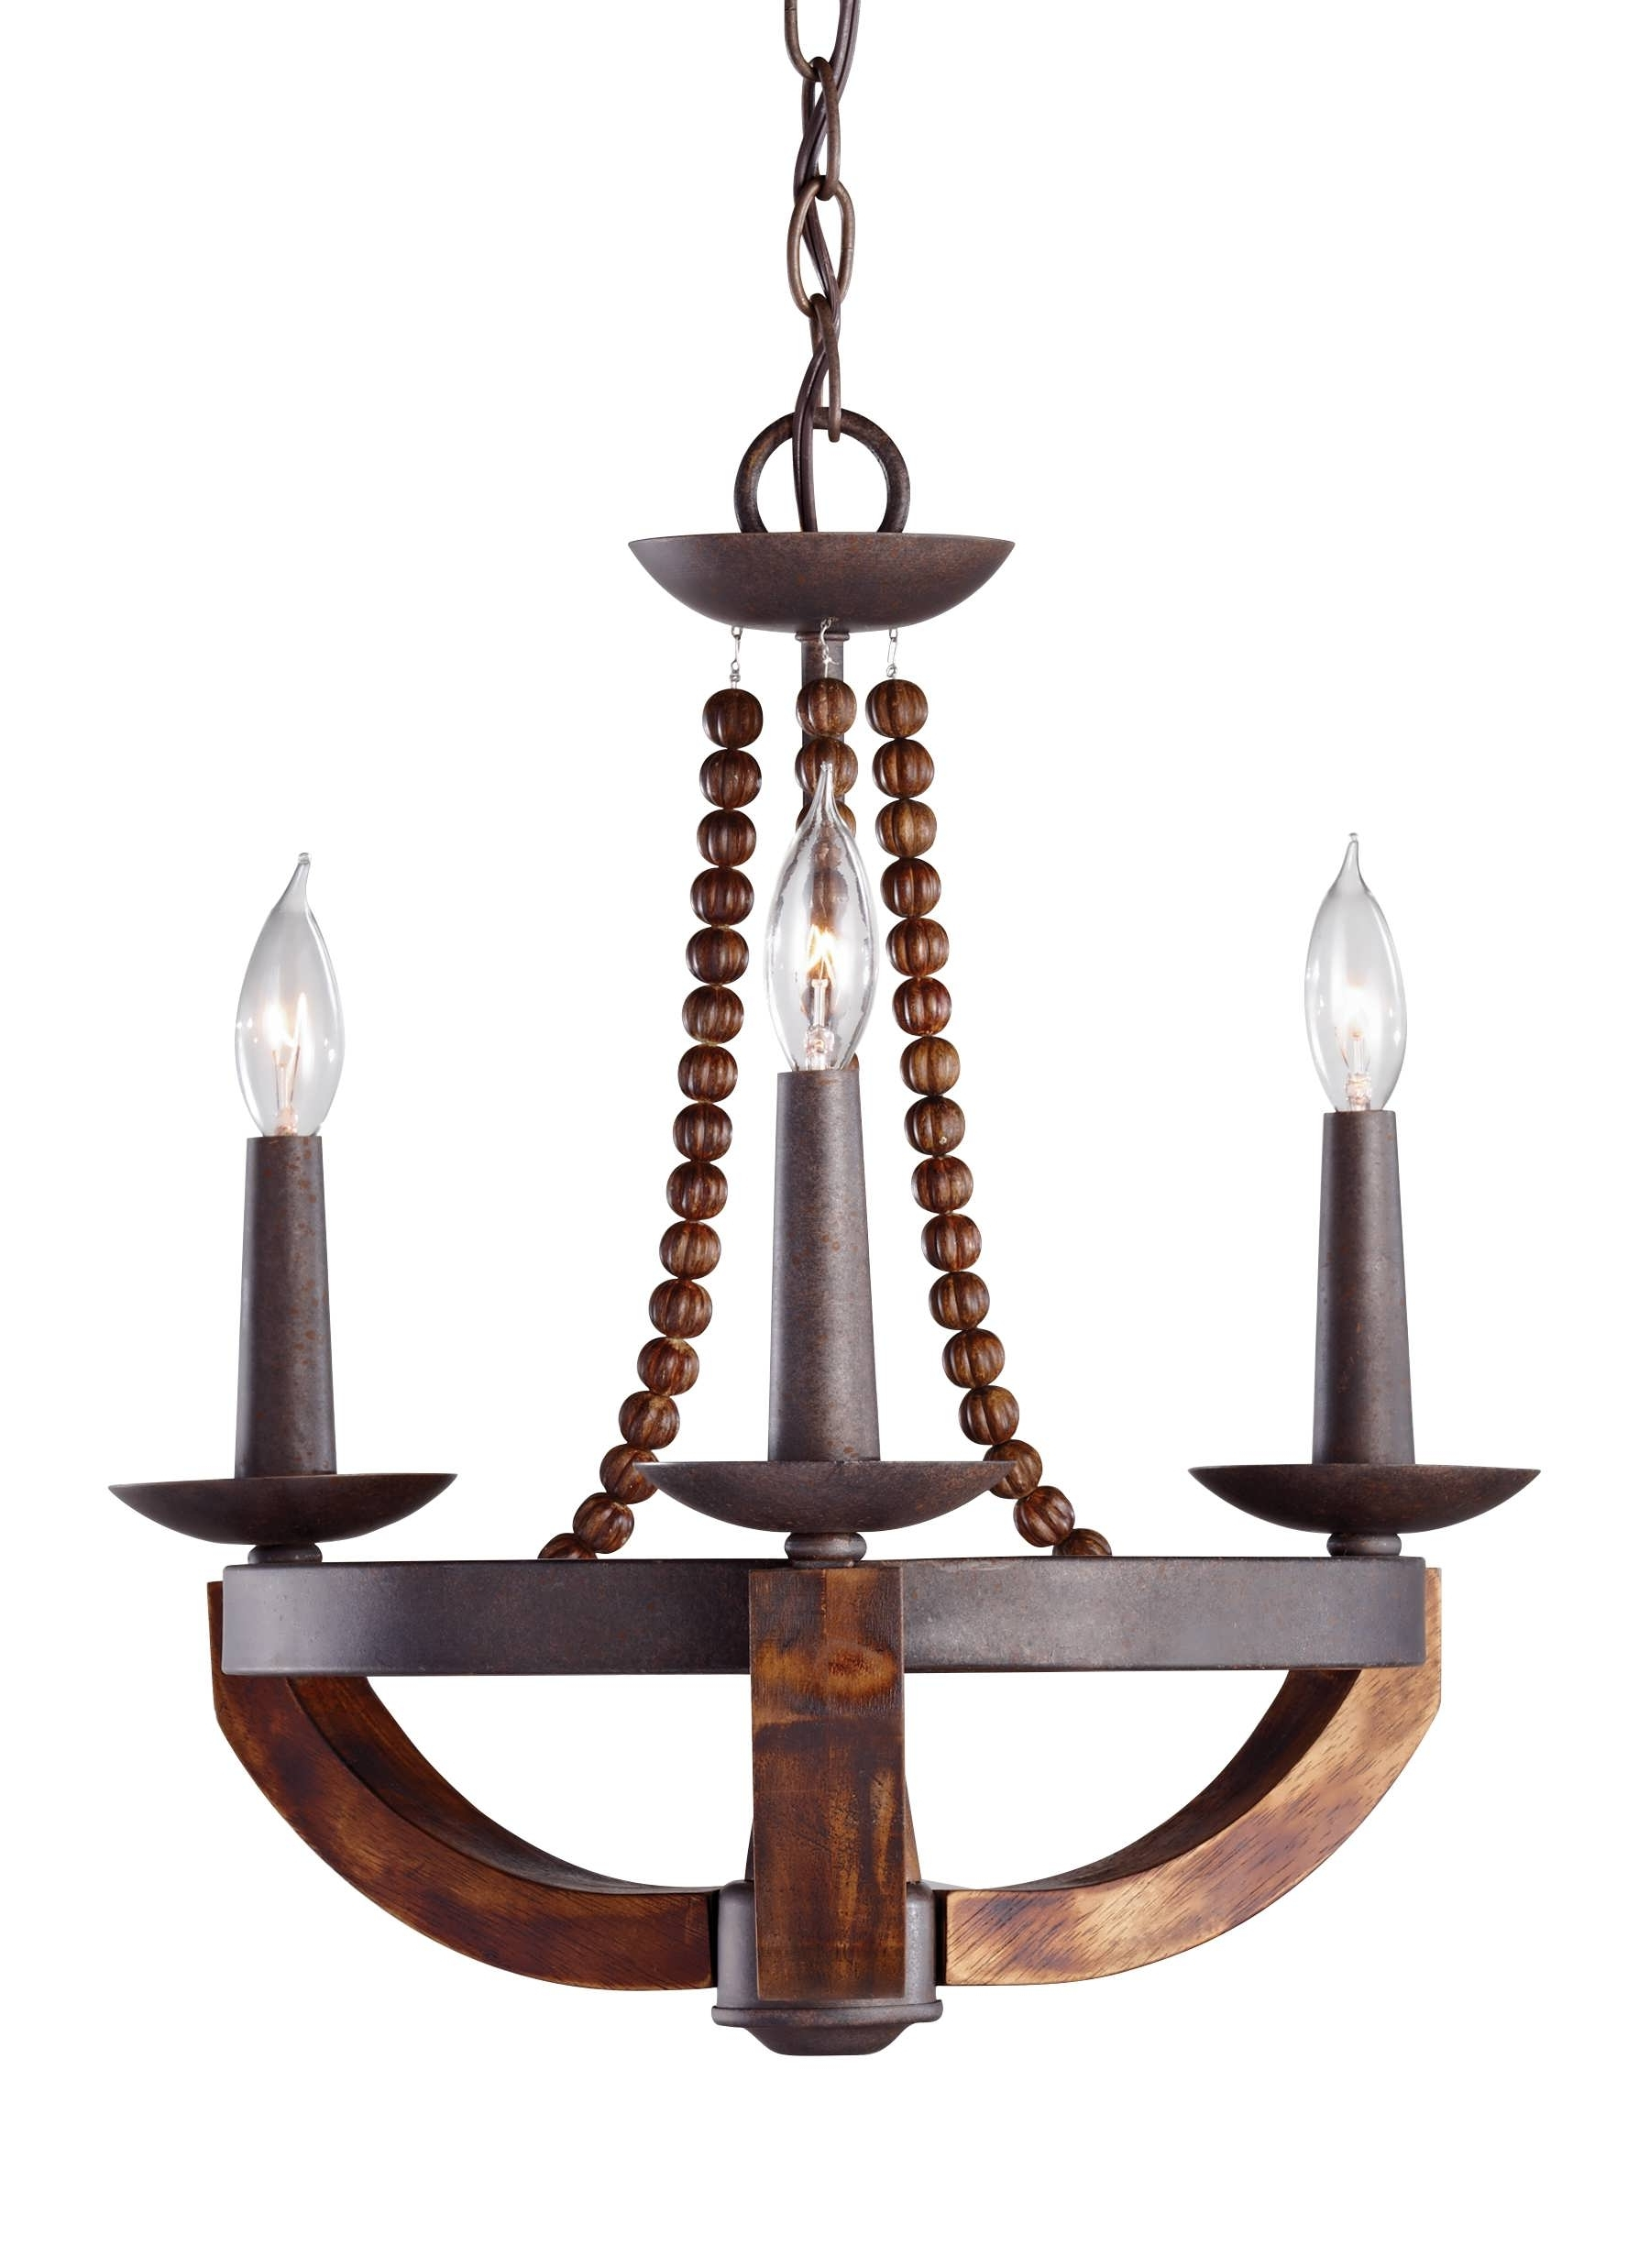 Small Rustic Chandeliers Inside Preferred Chandelier : Extra Large Rustic Chandeliers Iron Chandelier Wood And (View 6 of 15)